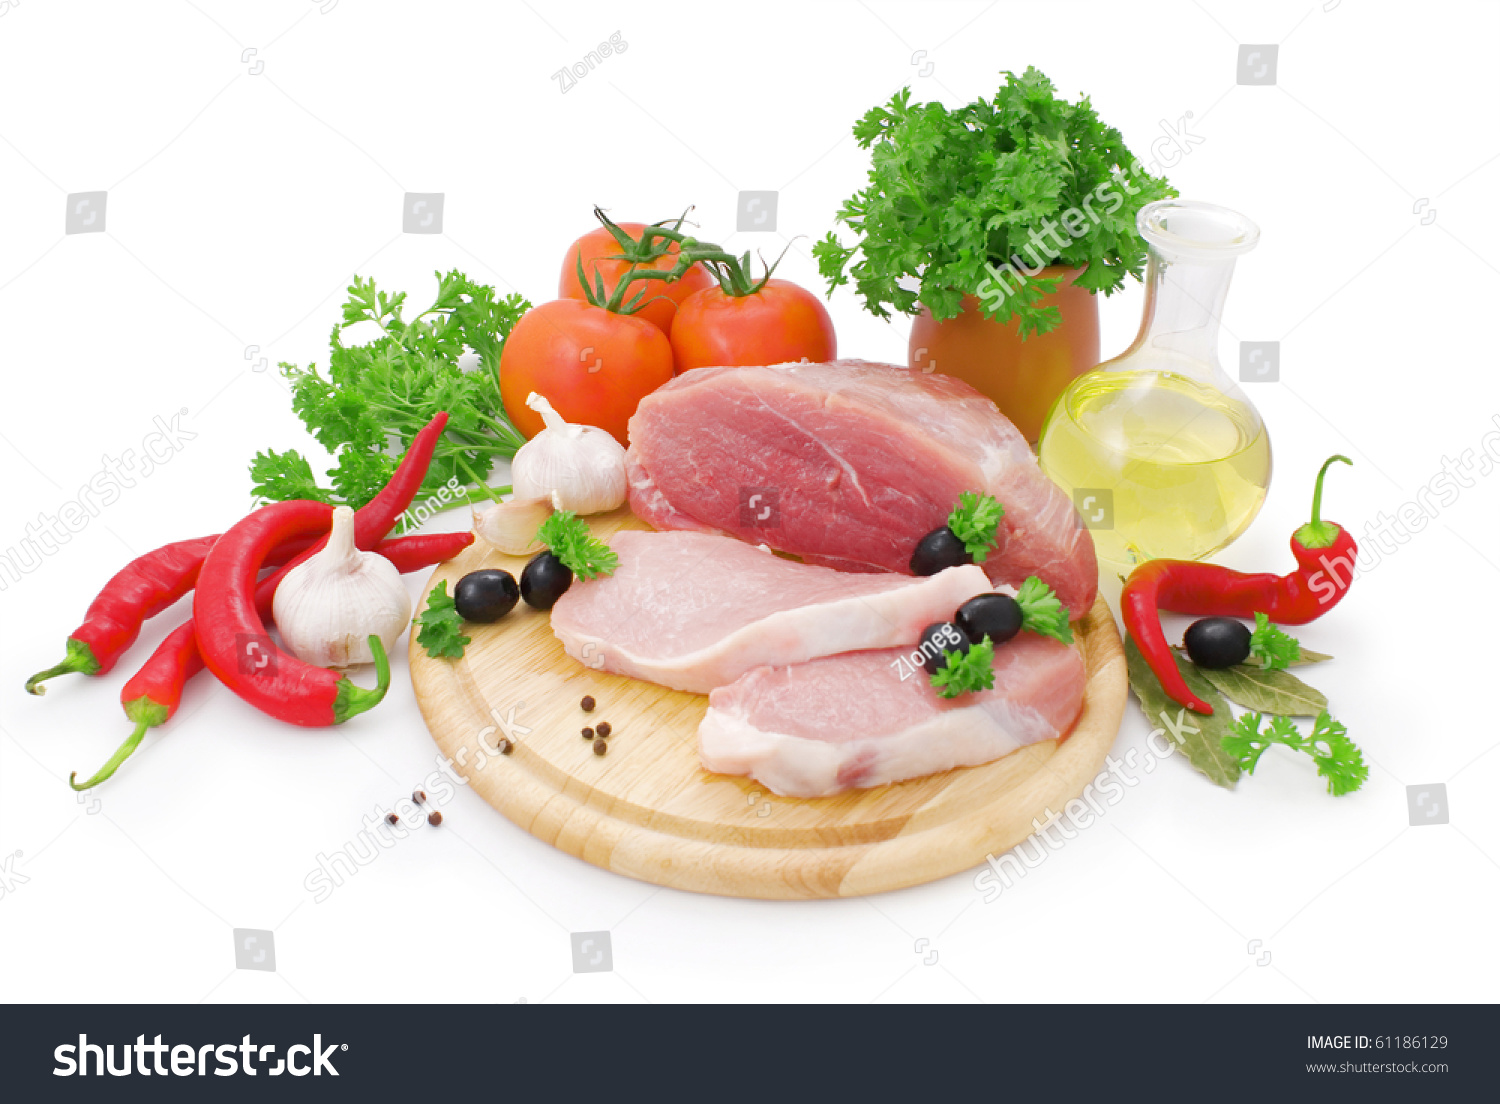 Nice Fresh Meat, Greens, Spices And Vegetables Isolated On